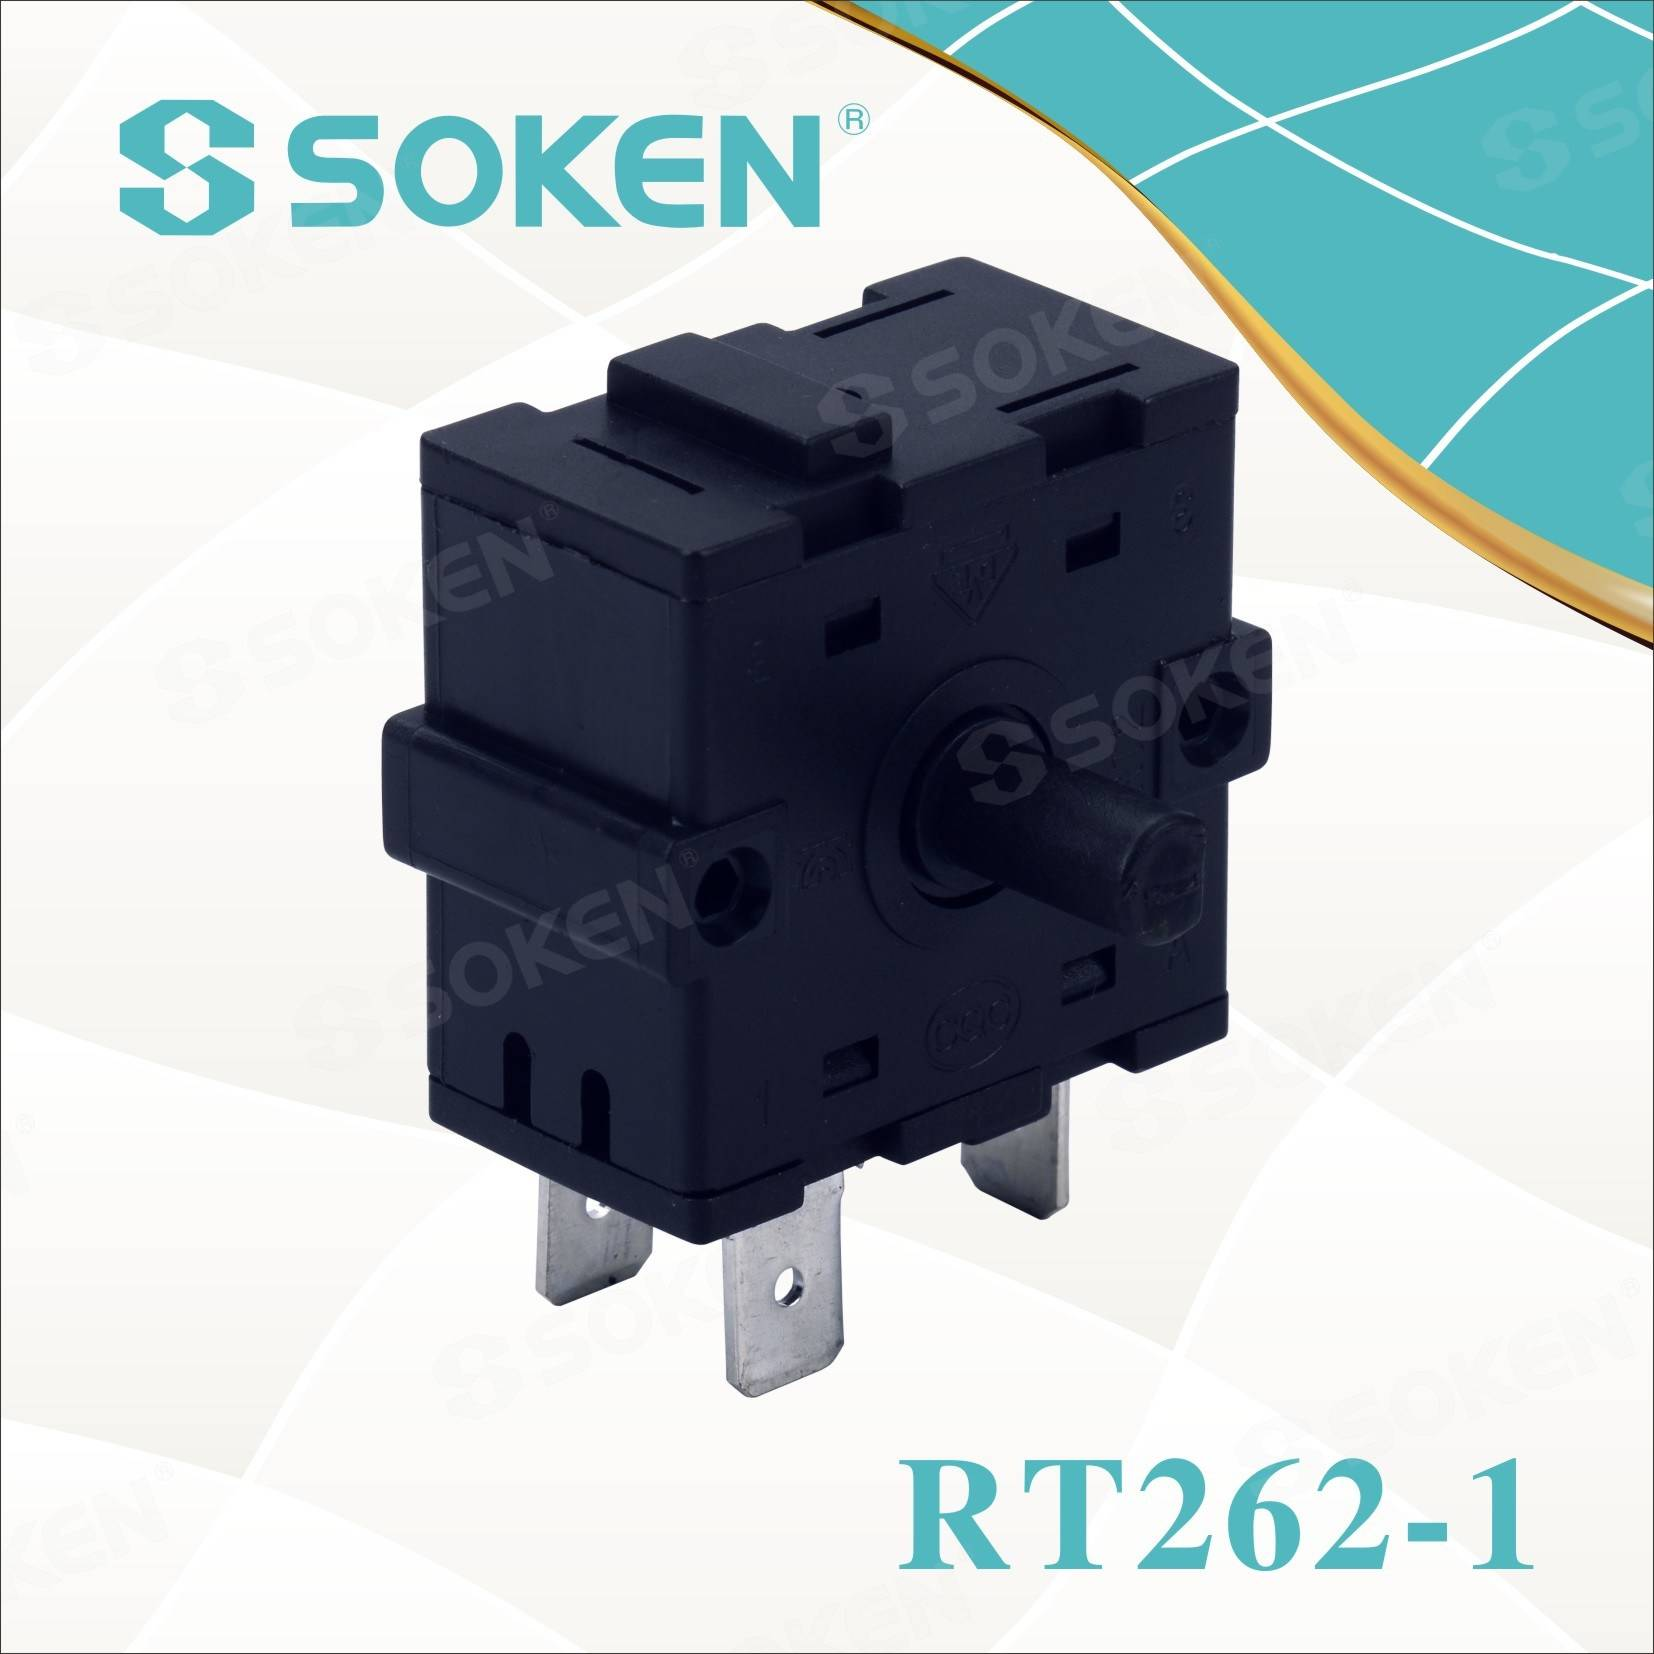 Original Factory 4 Pole Rotary Switches -